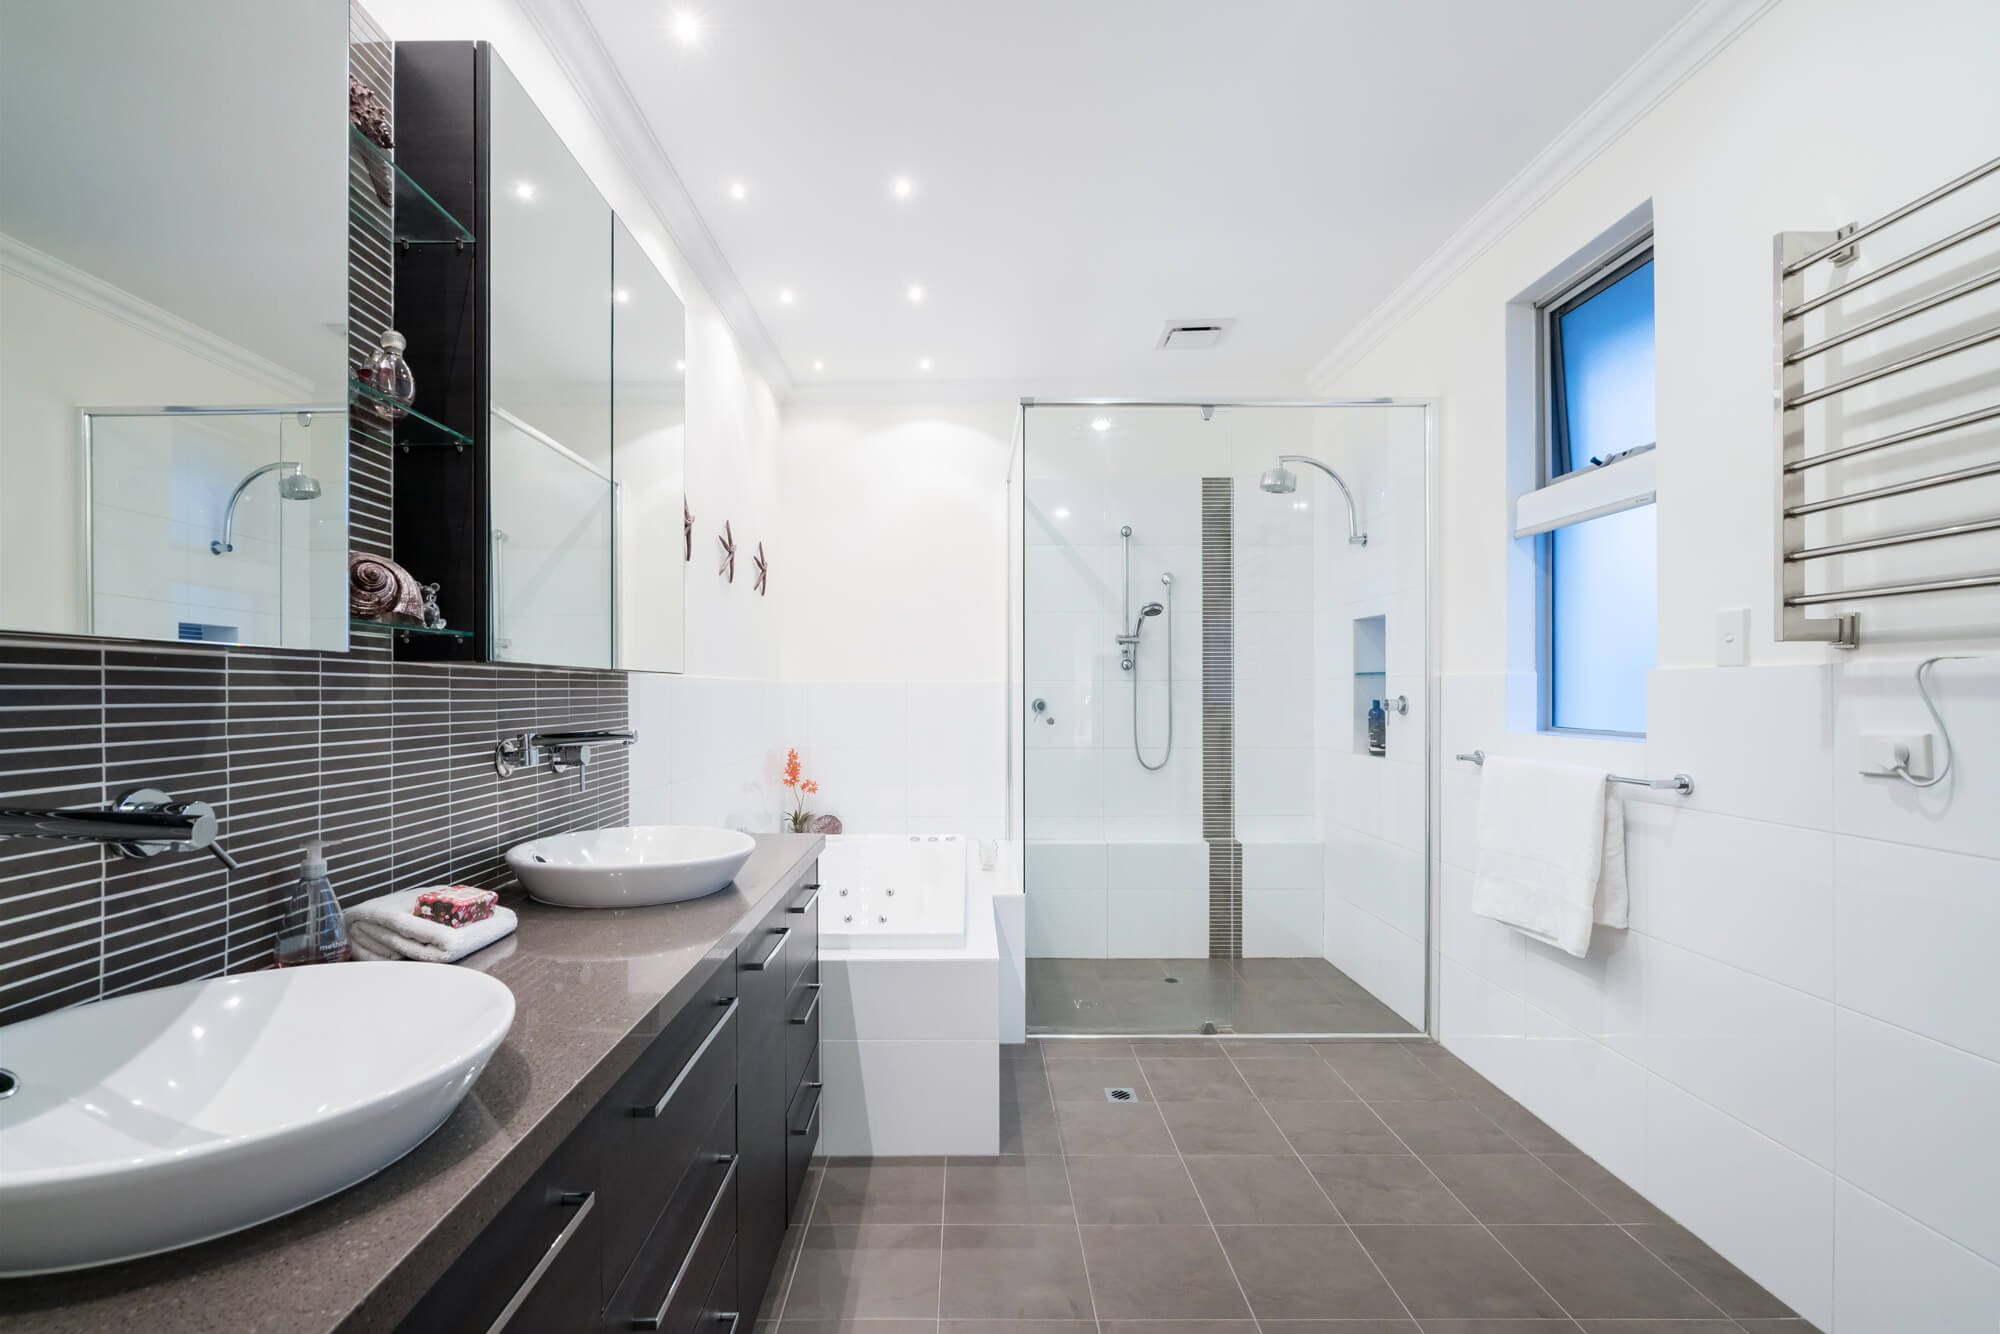 Bathroom Fitter Coventry, Bathroom Adaptations & Mobility Equipment Coventry